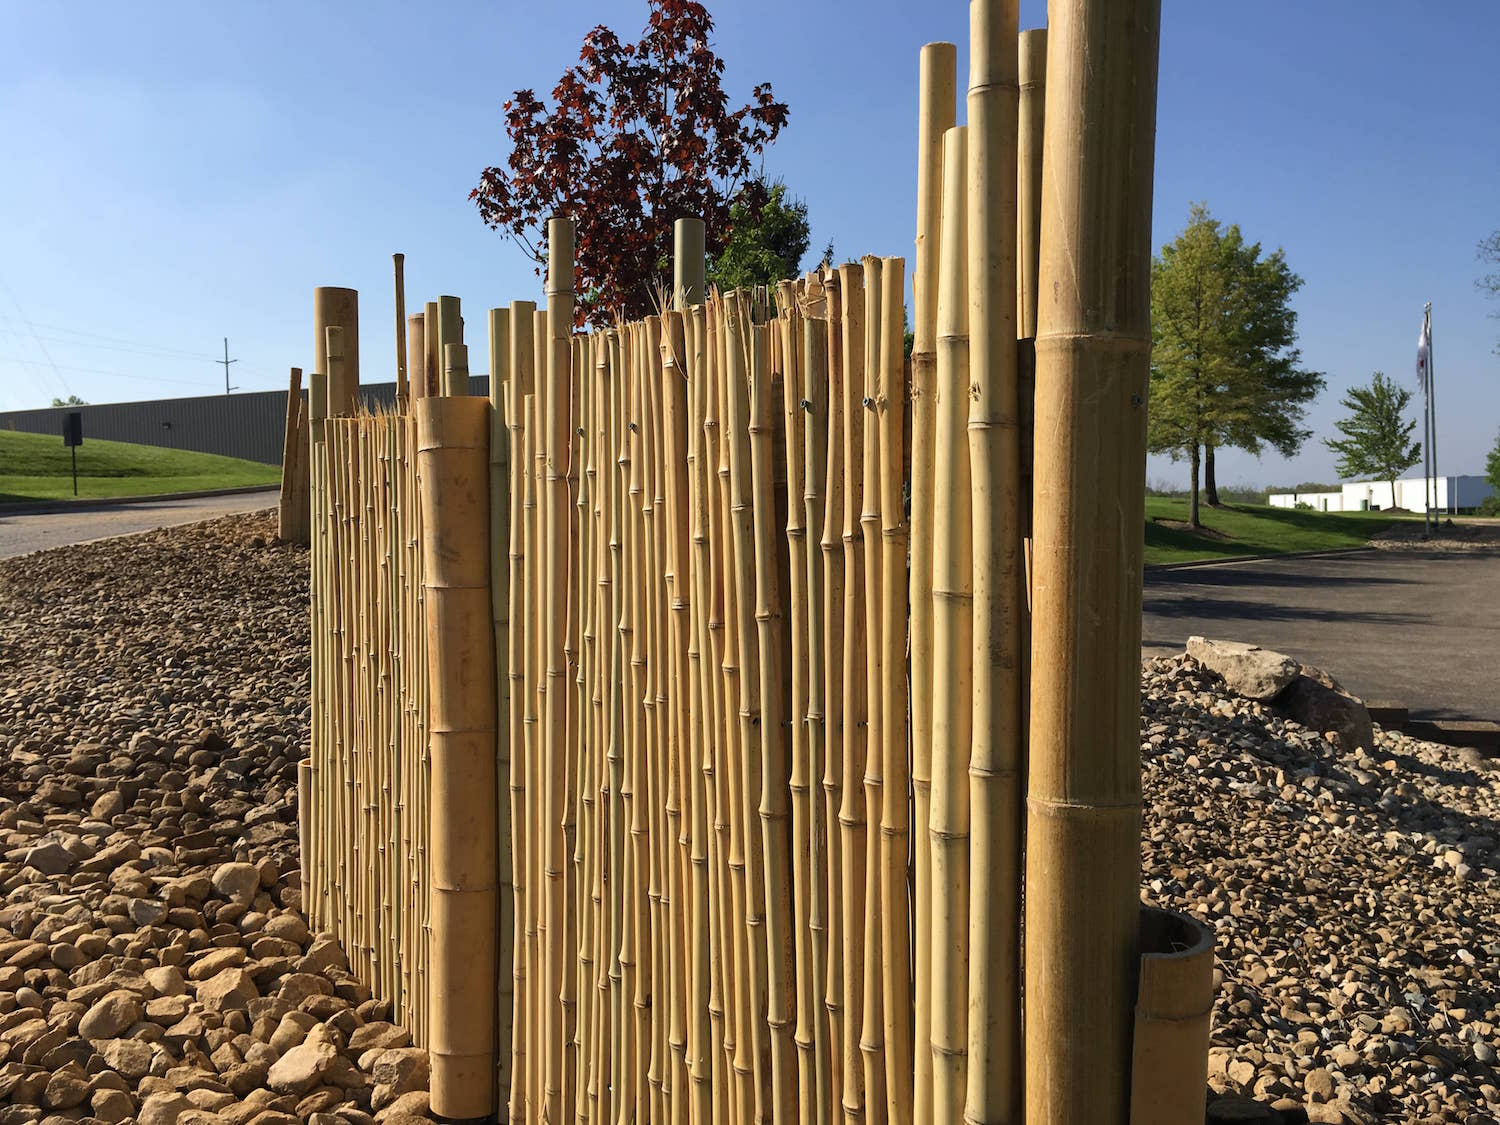 landscaping-bamboo-fencing.jpg